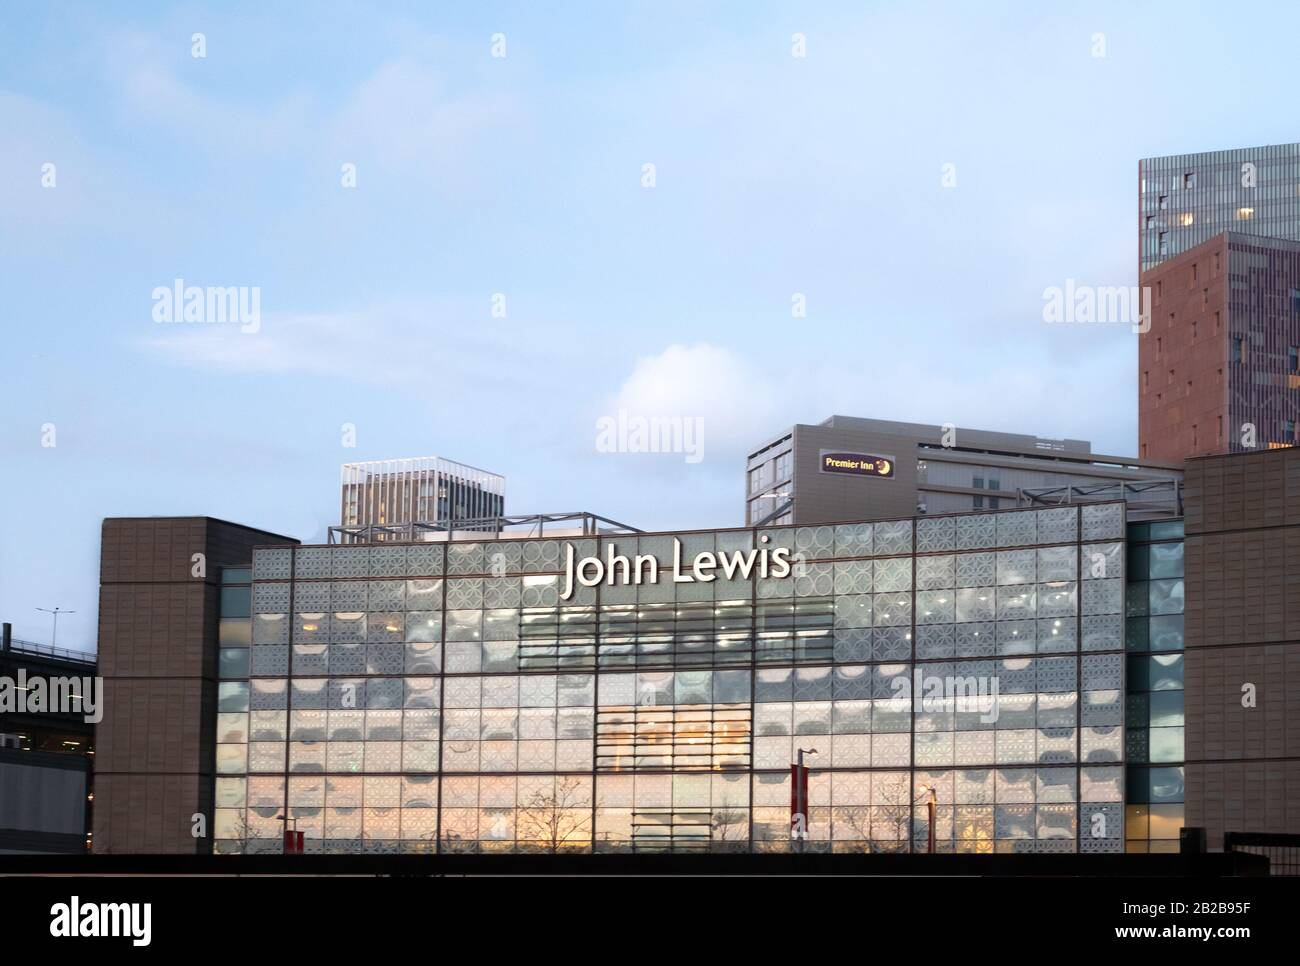 External Frontage of the John Lewis flagship store at Westfield Stratford, East london, UK Stock Photo